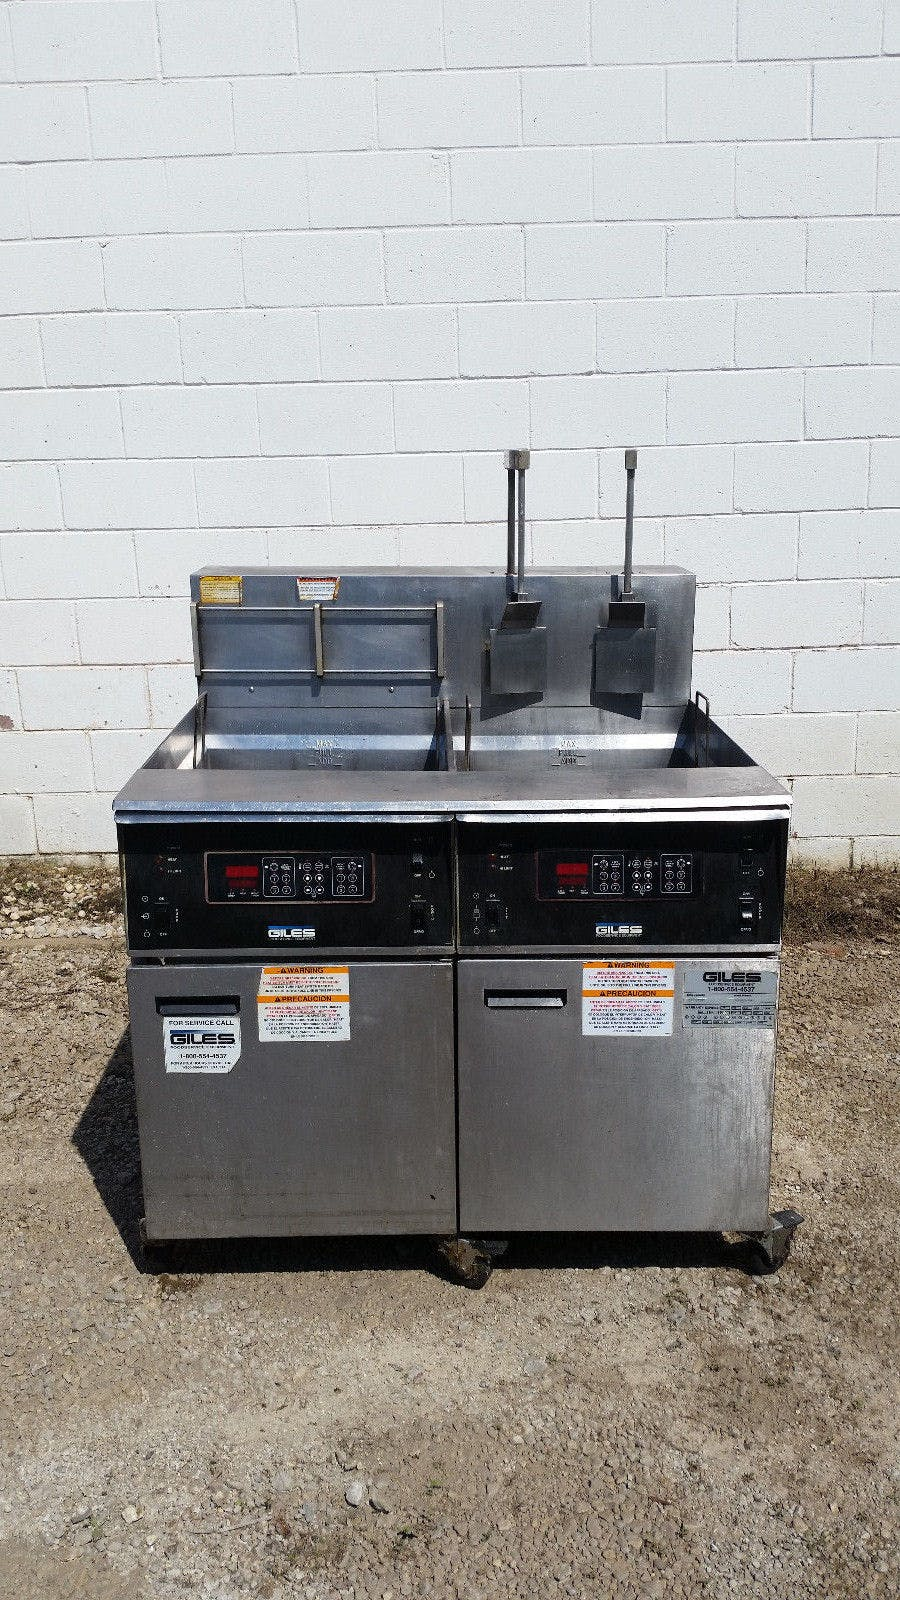 Giles Double Vat Deep Fat Fryer Filter Box EOF.20 480v Removed Working - sold by Jak's Restaurant Supply